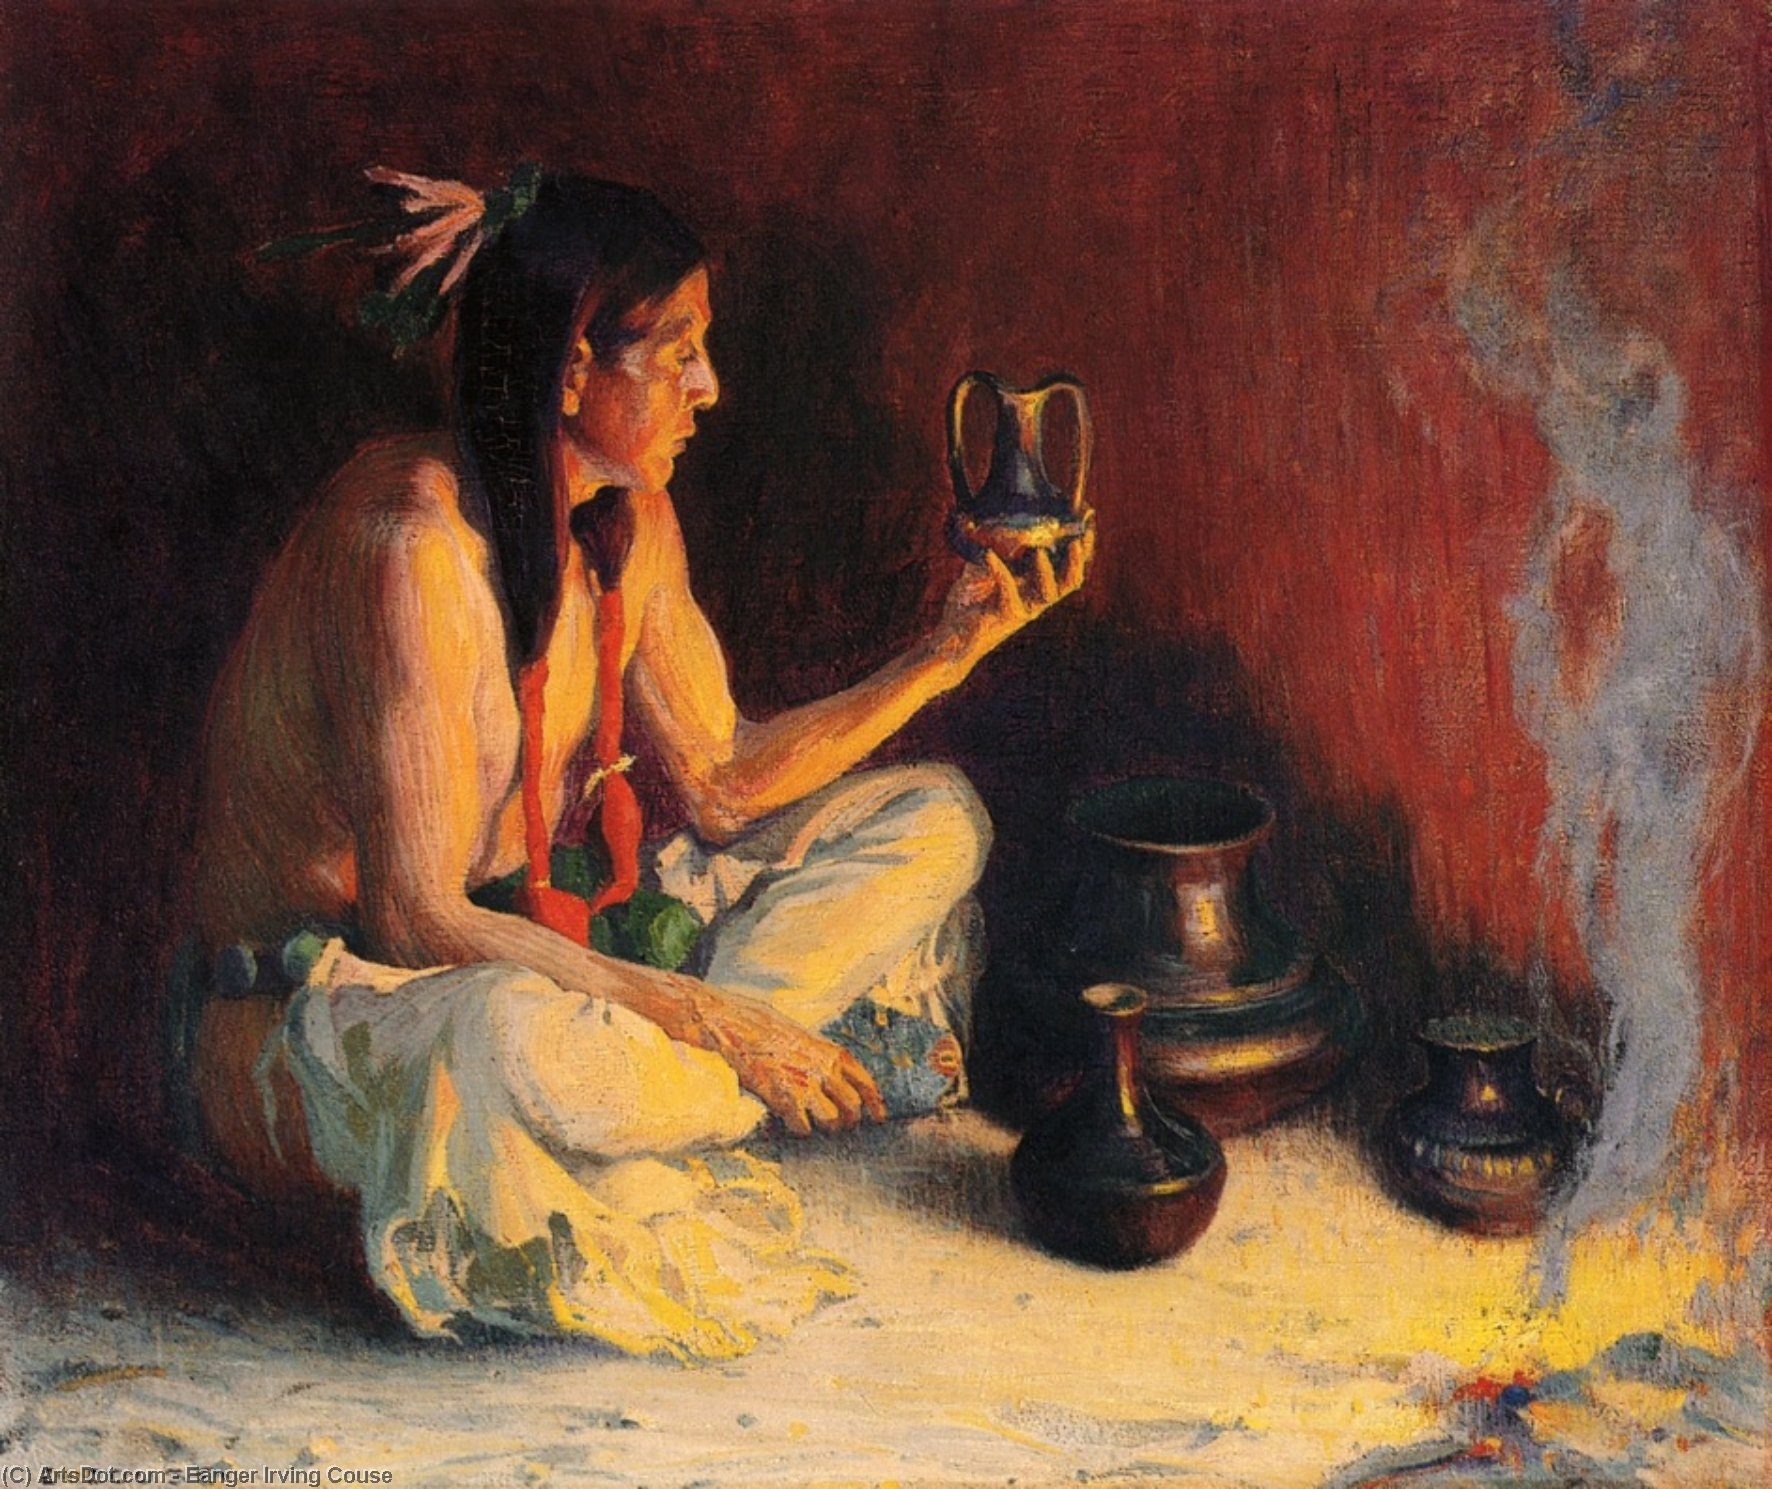 Taos Indian and Pottery, Oil On Canvas by Eanger Irving Couse (1866-1936, United States)